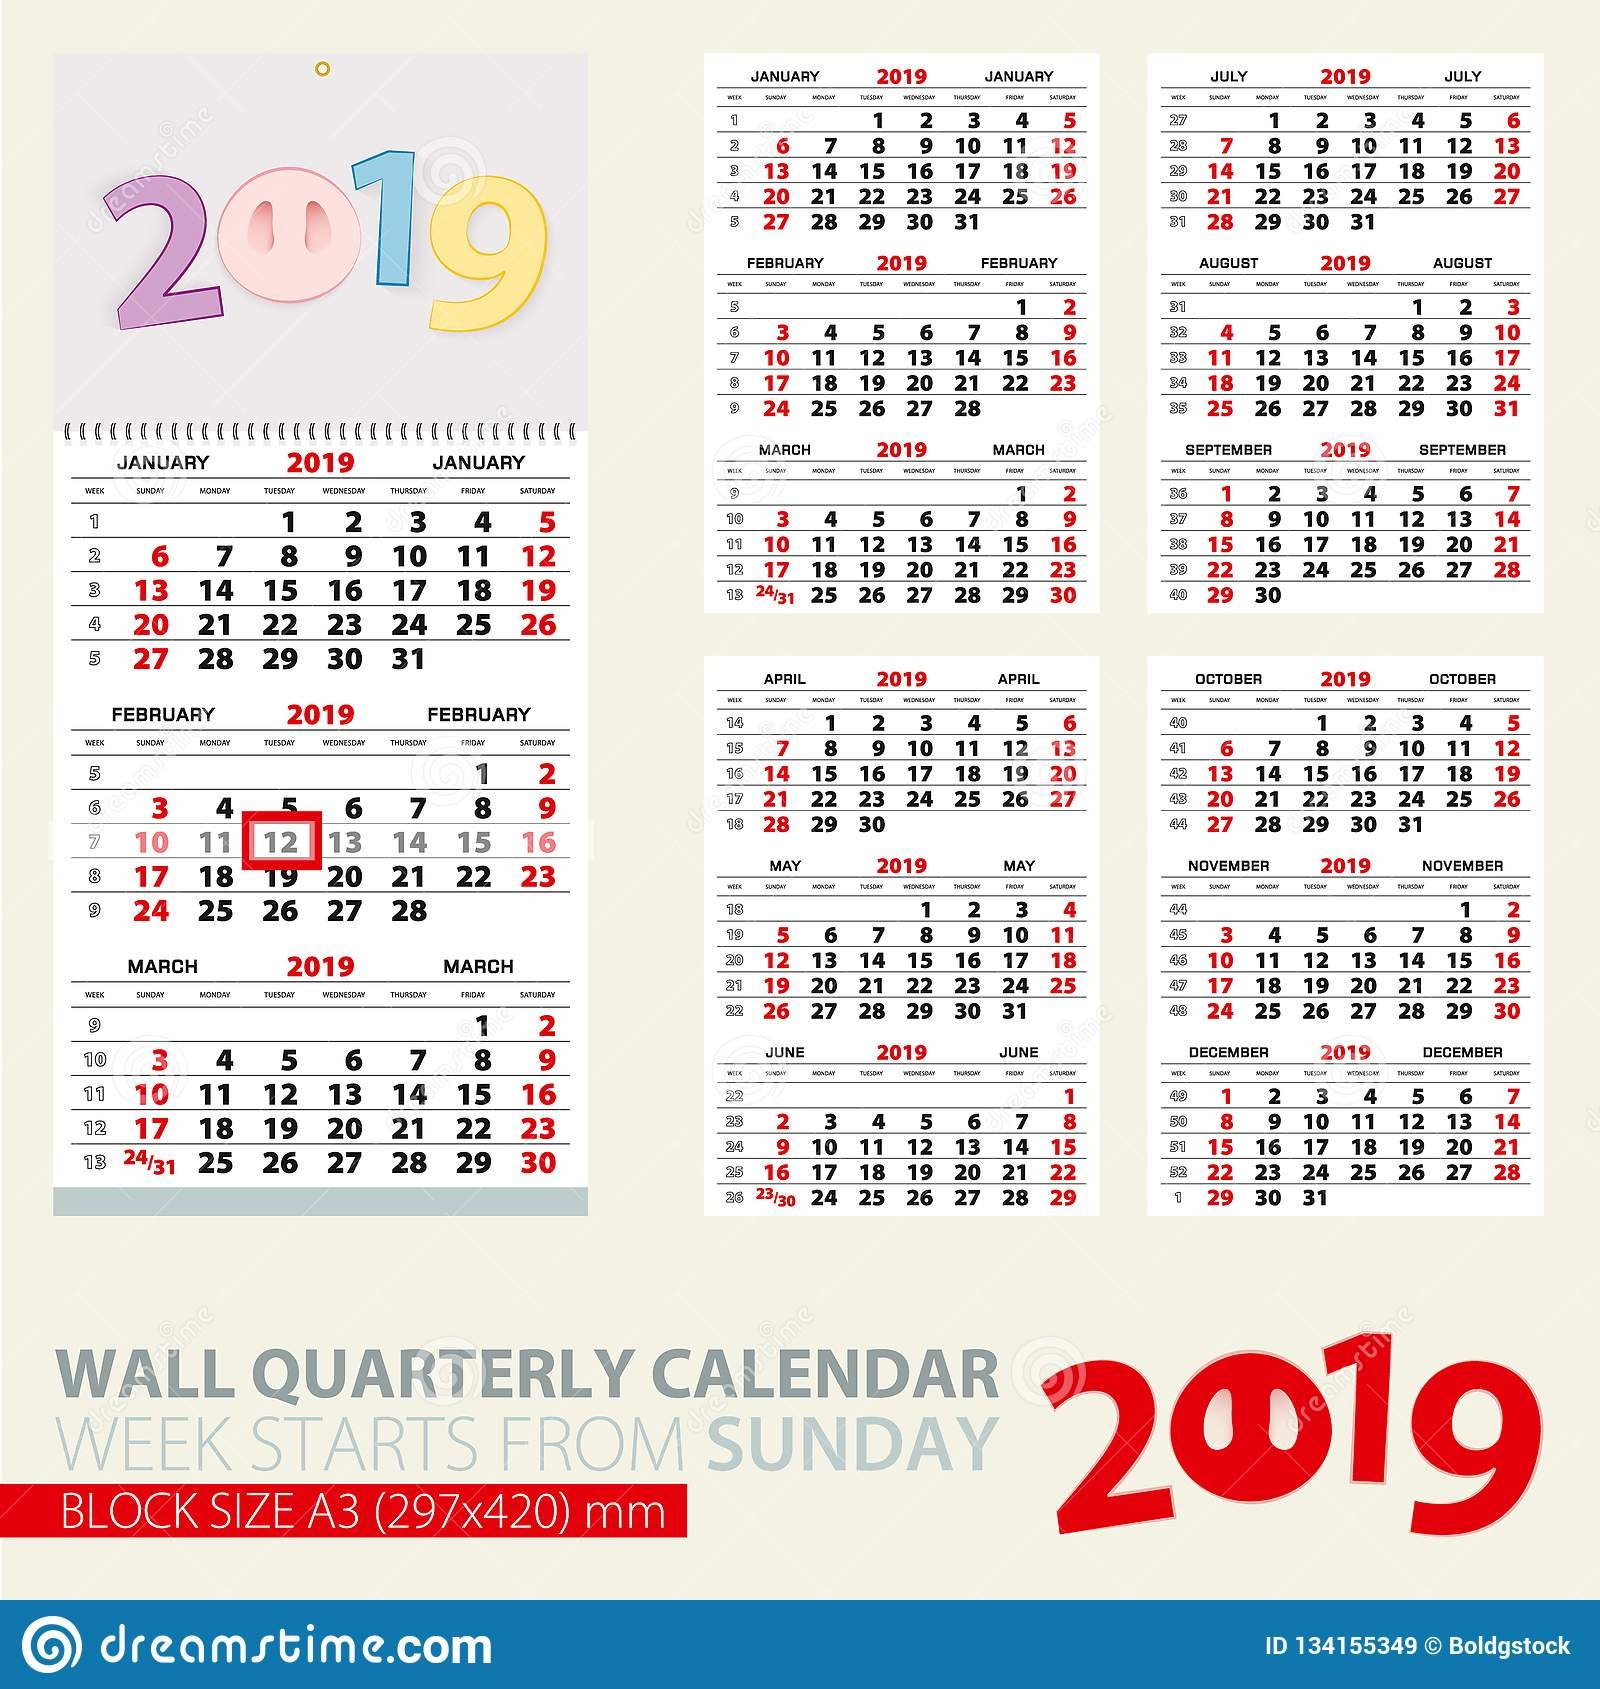 Print Template Of Wall Quarterly Calendar For 2019 Year. Year Of The Calendar Week 43 2019